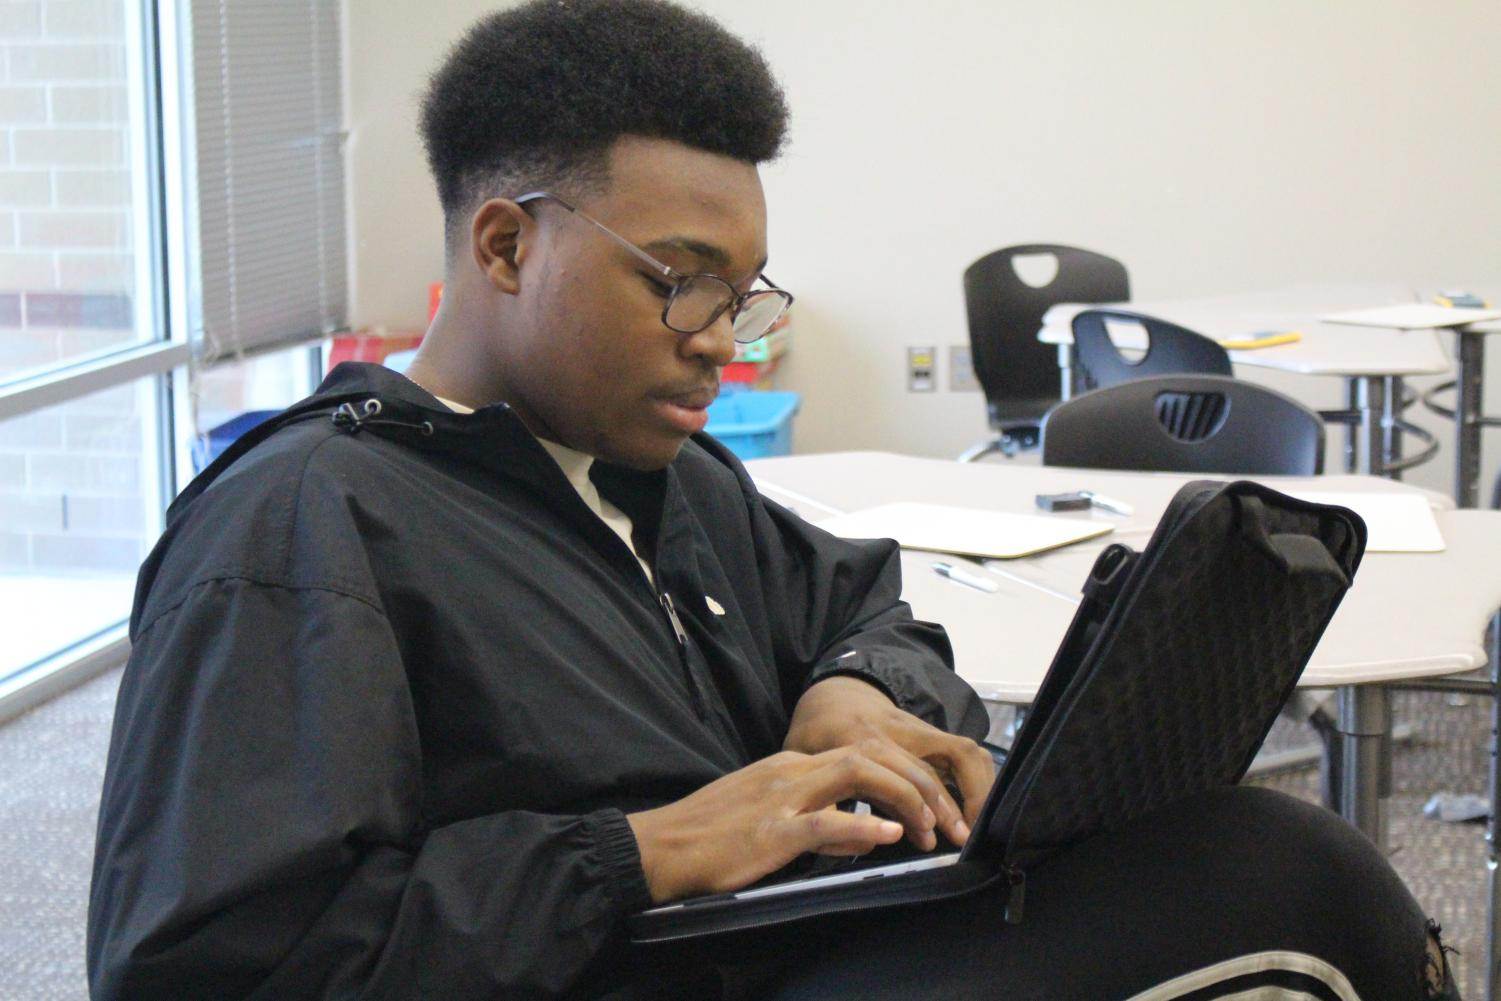 Students completed all their work online on Nov. 13.